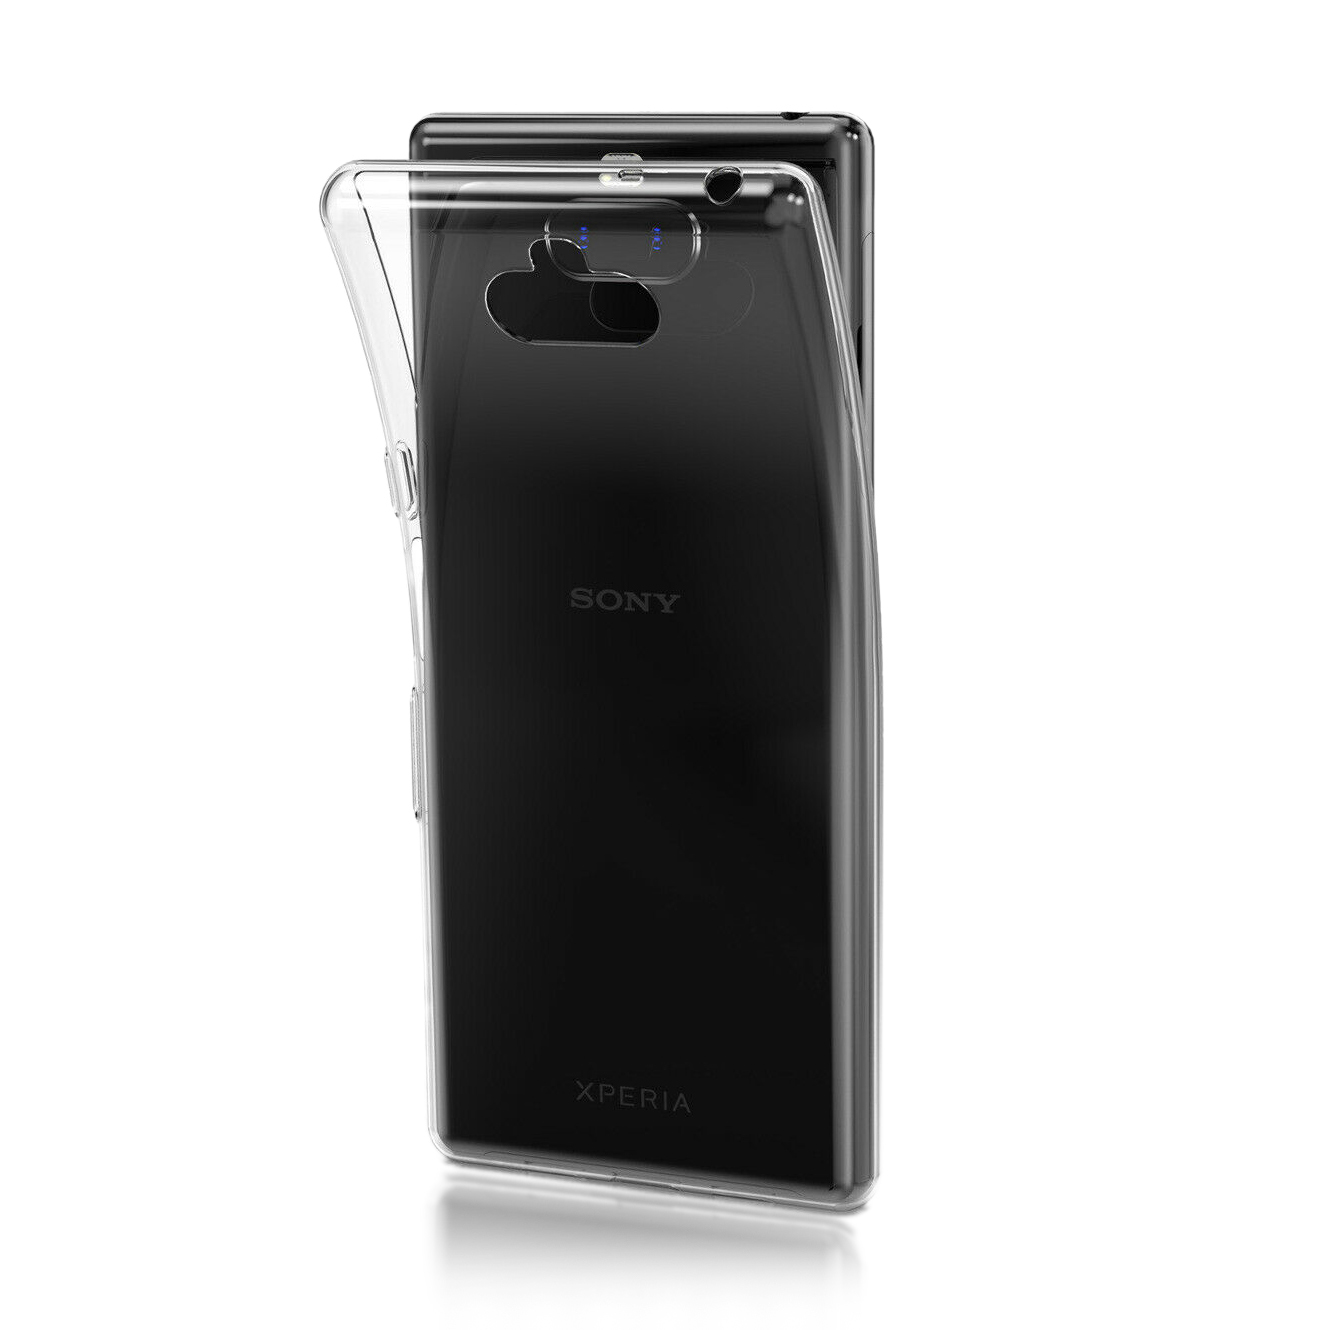 SONY XPERIA UL USB WINDOWS 10 DRIVER DOWNLOAD